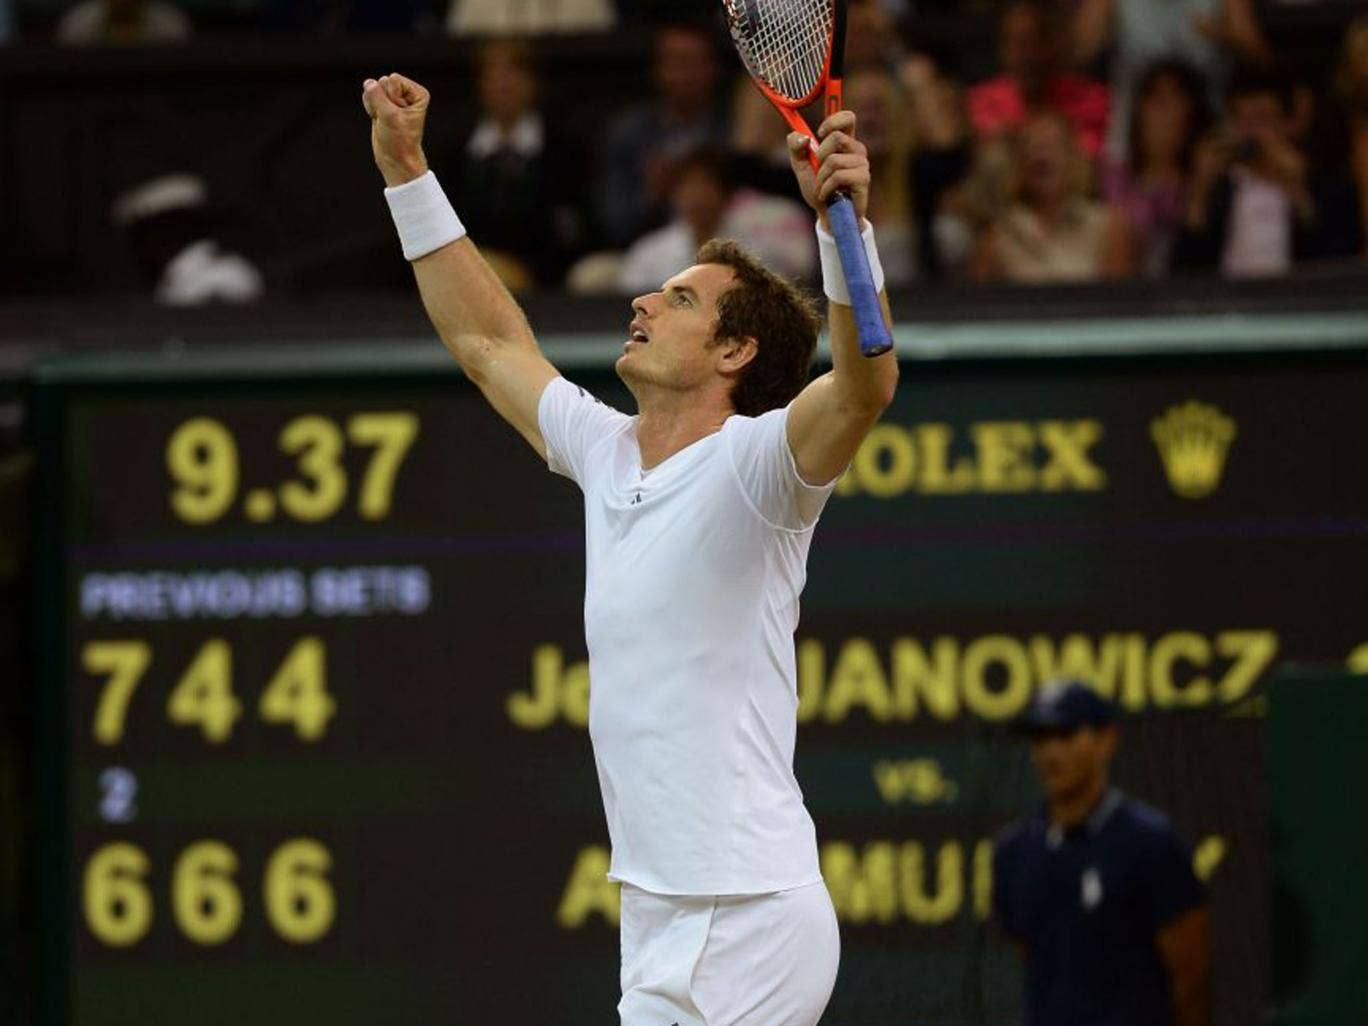 Andy Murray celebrates his entry into the final